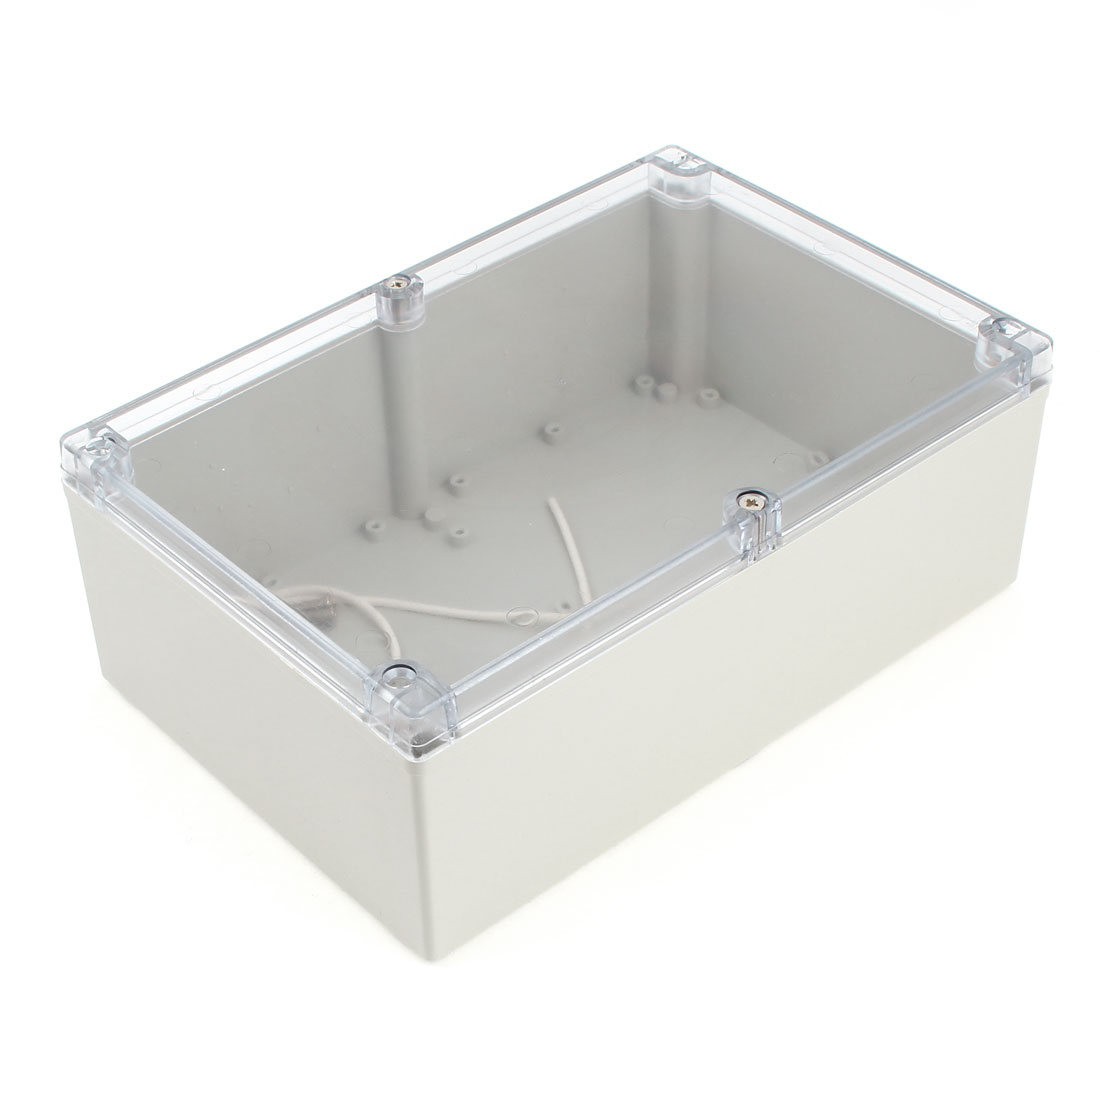 240mm x 160mm x 90mm Waterproof Plastic DIY Junction Box Power Protection Case